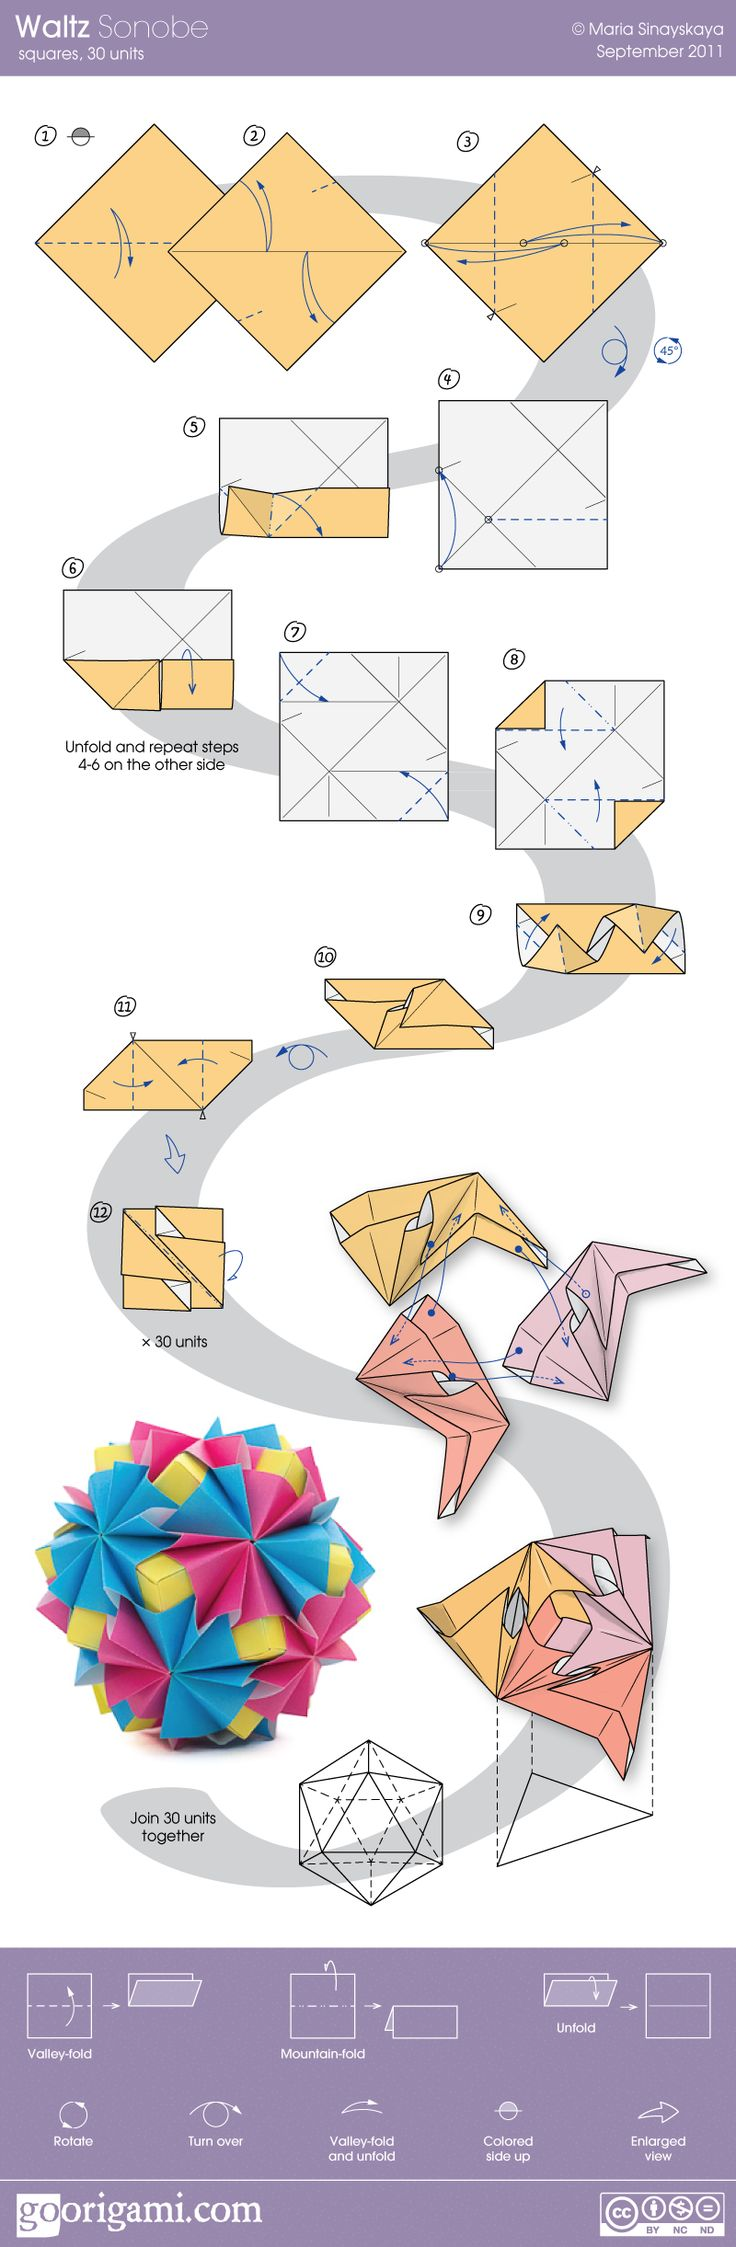 93 Best Origami Images On Pinterest Paper Crafts Papercraft And